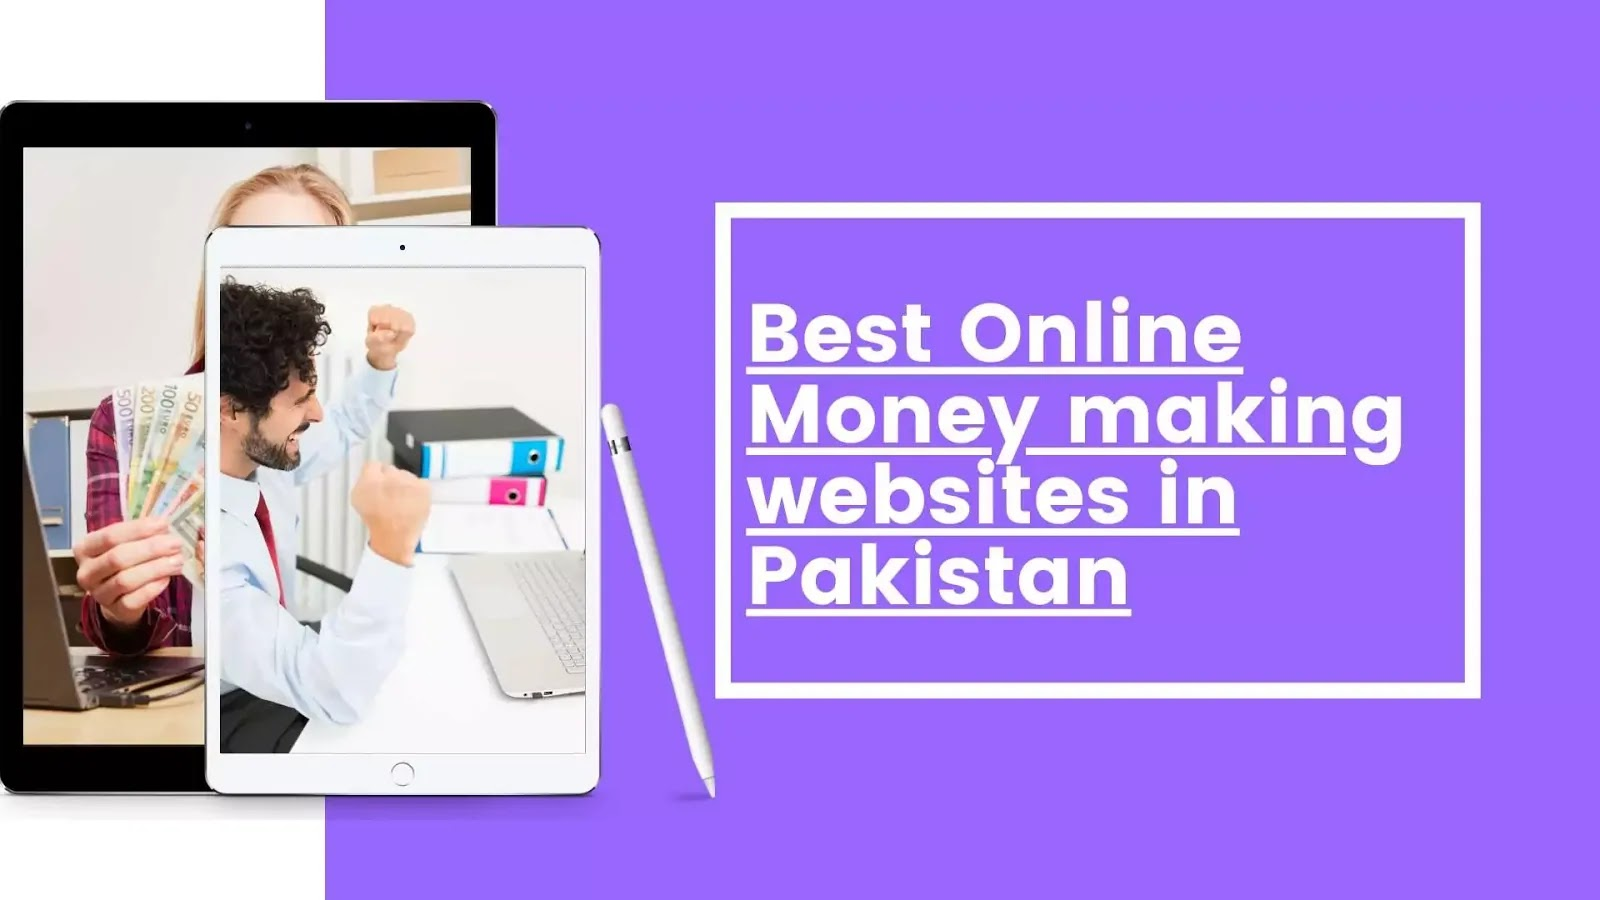 Online money making websites in Pakistan